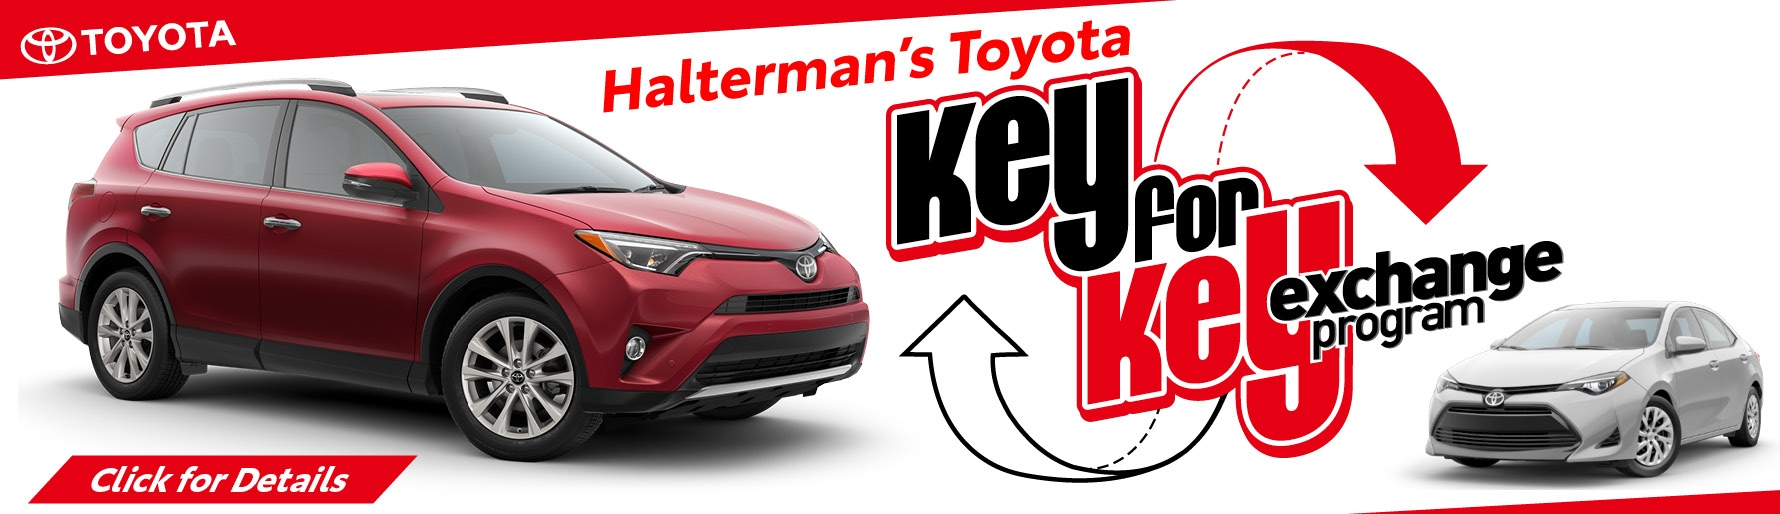 AMAZING SPECIALS At Haltermans Toyota In PA